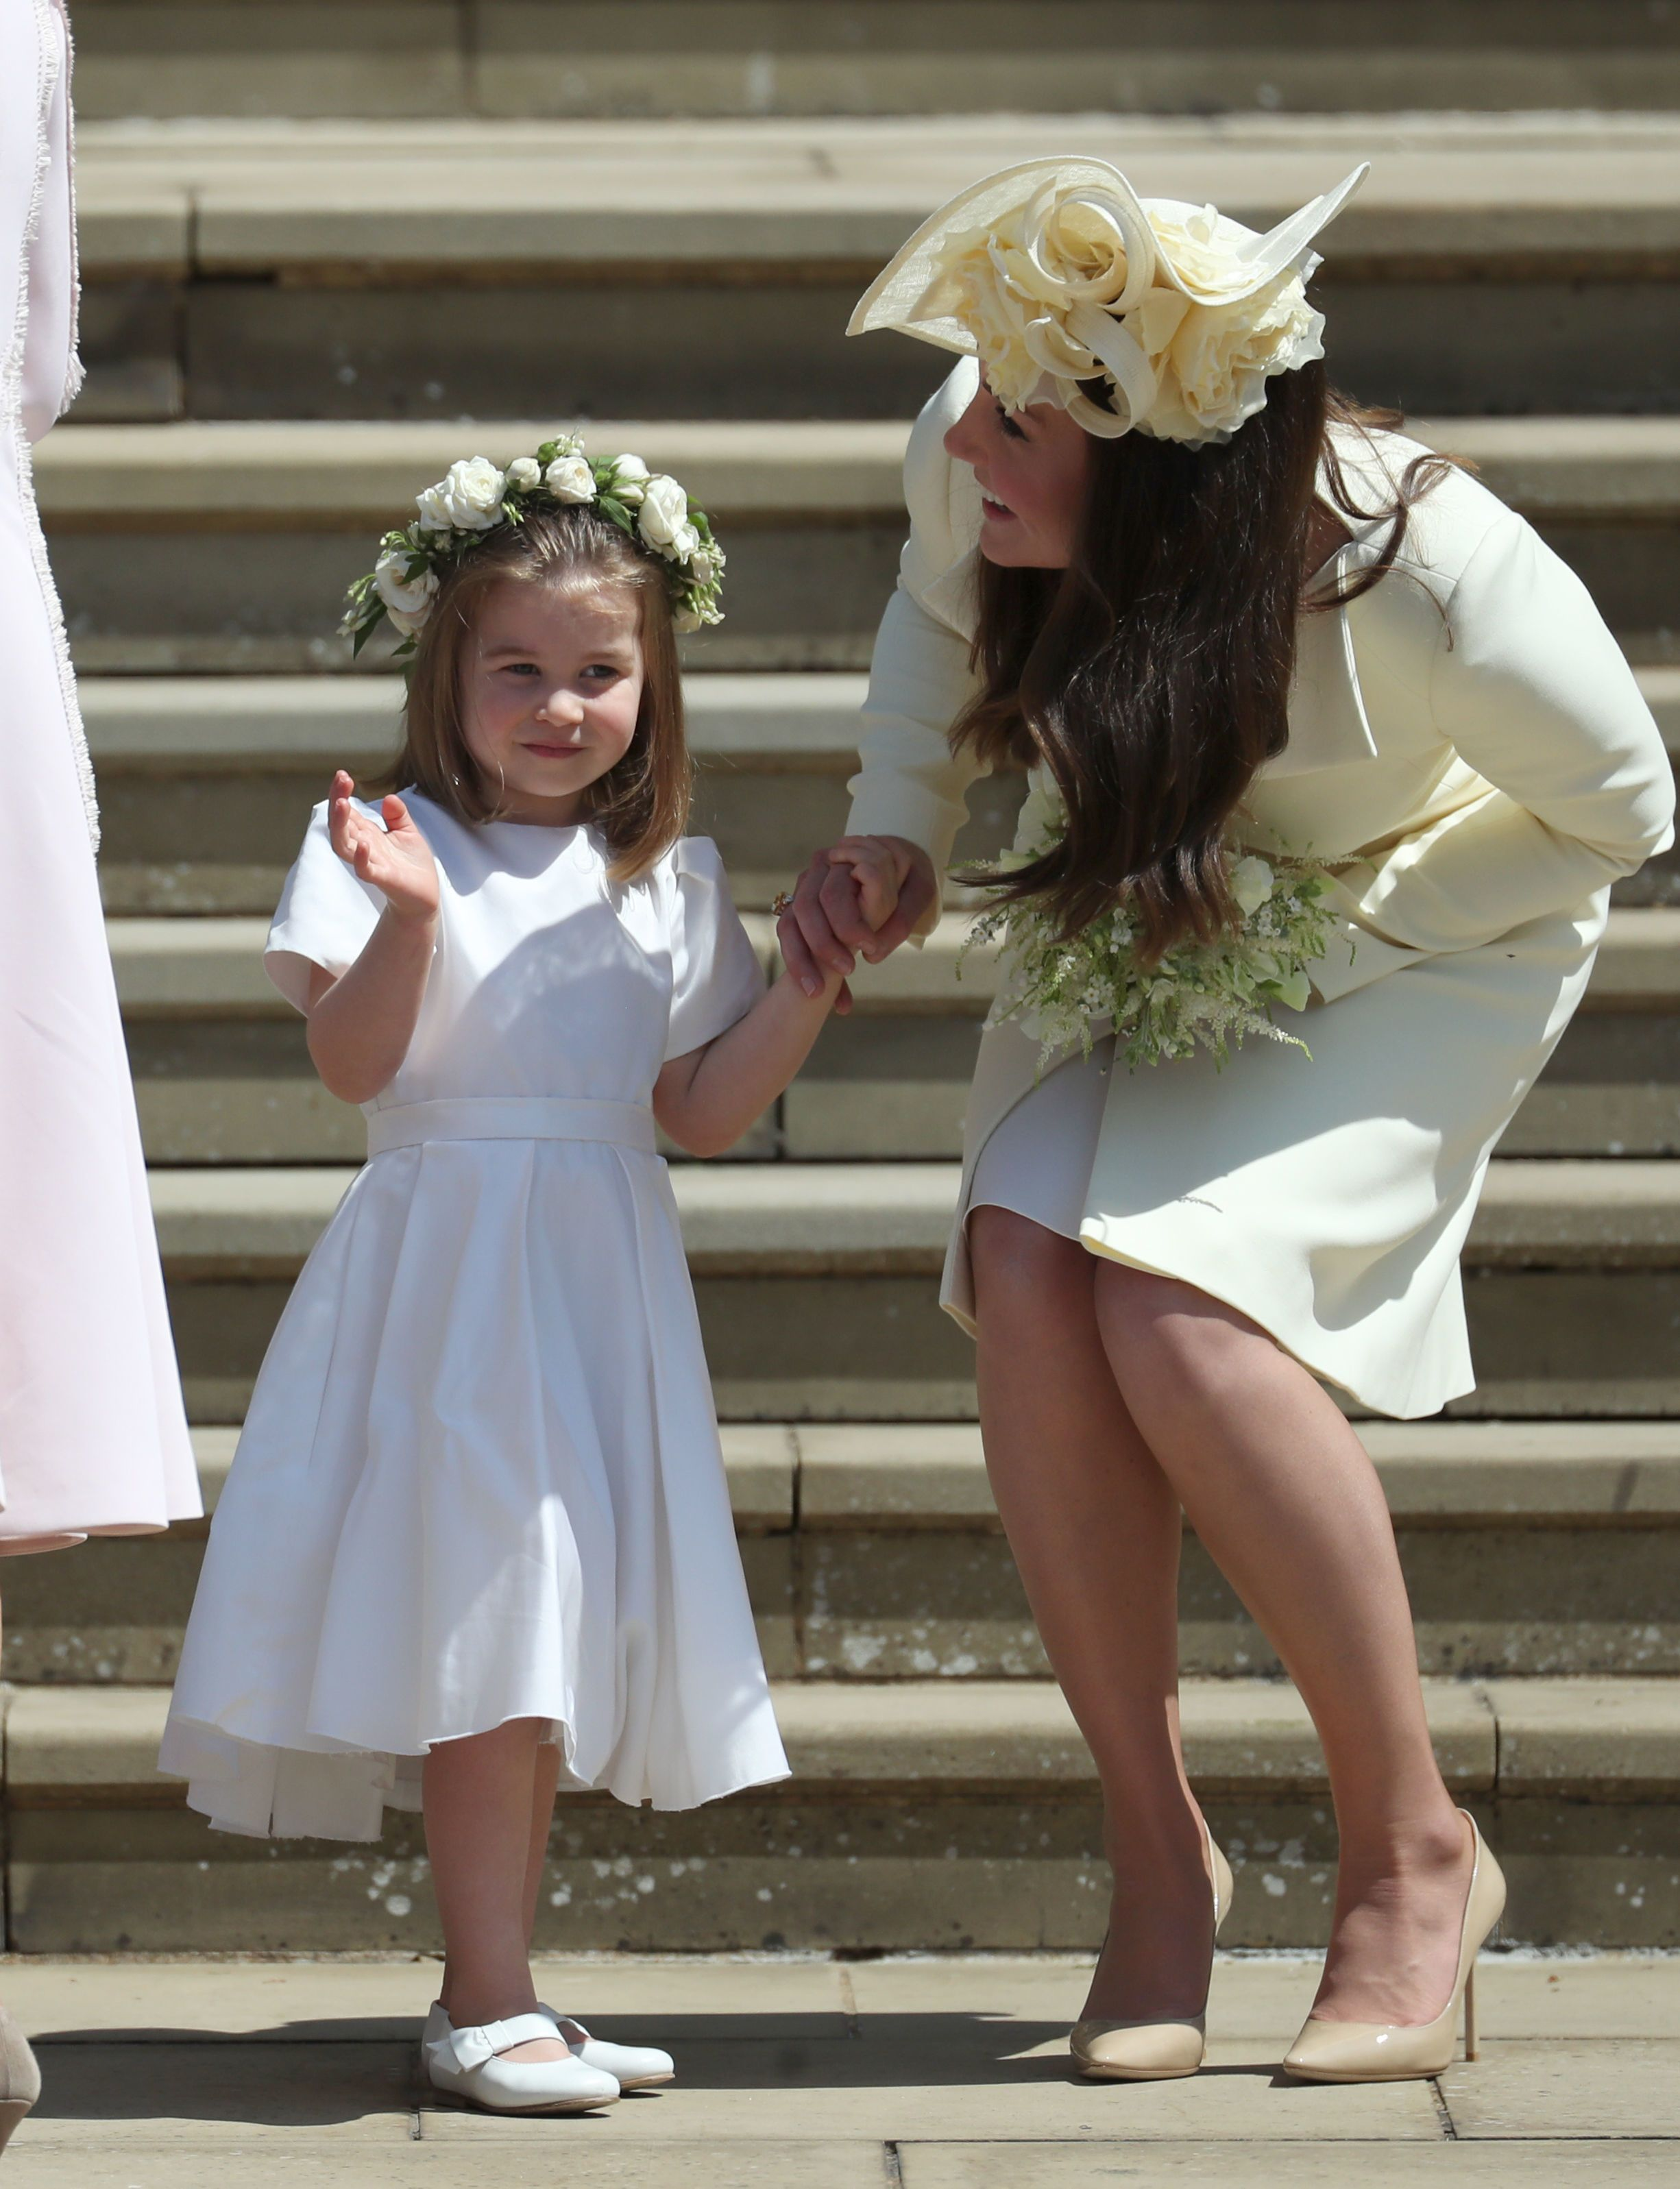 Prince george and princess charlottes cutest royal wedding photos prince george and princess charlottes cutest royal wedding photos as page boy and bridesmaid izmirmasajfo